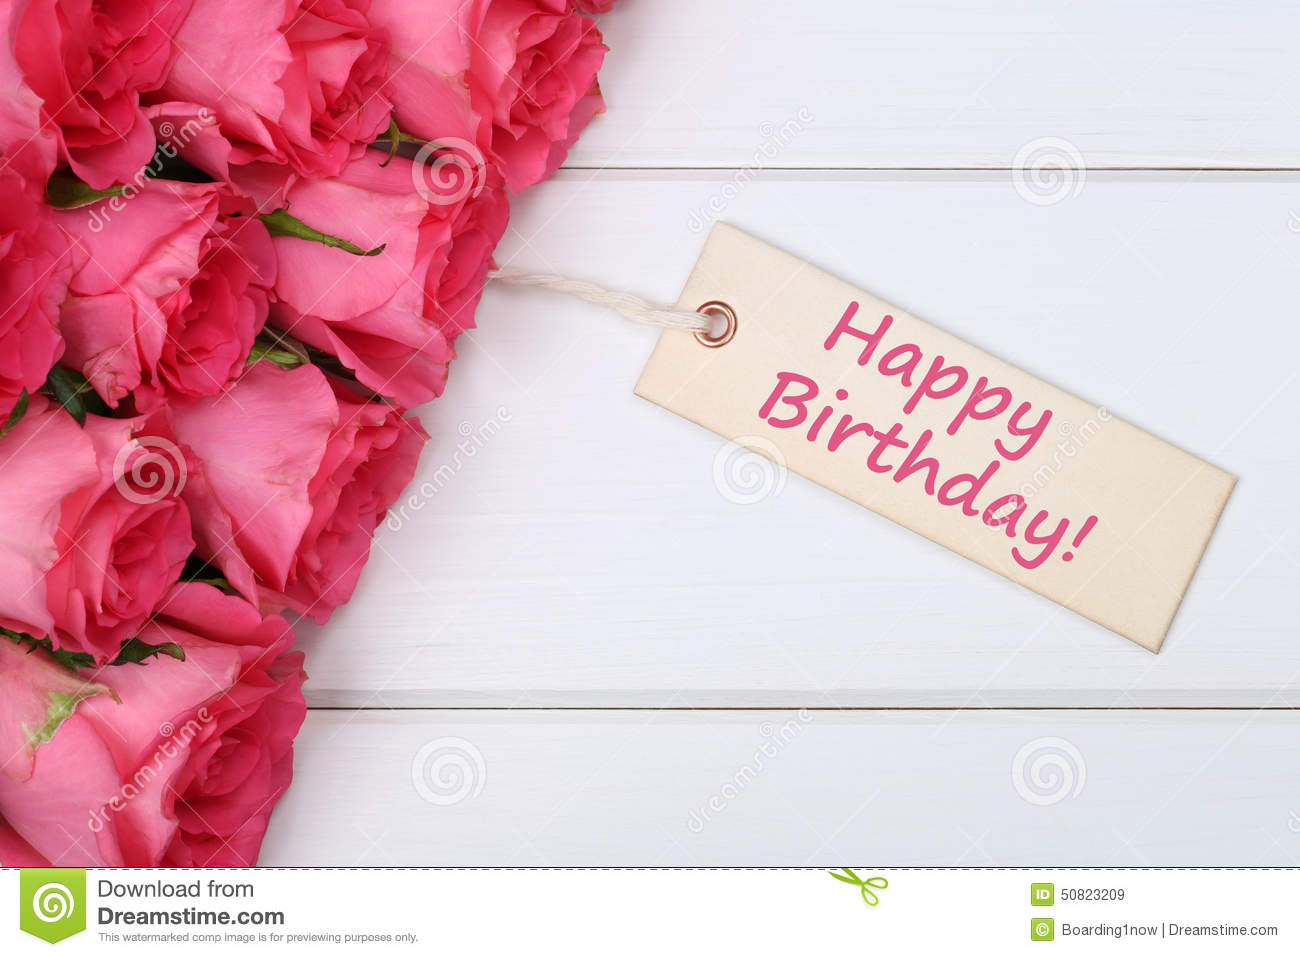 Happy birthday with roses flowers with greeting card on a wooden happy birthday with roses flowers with greeting card on a wooden izmirmasajfo